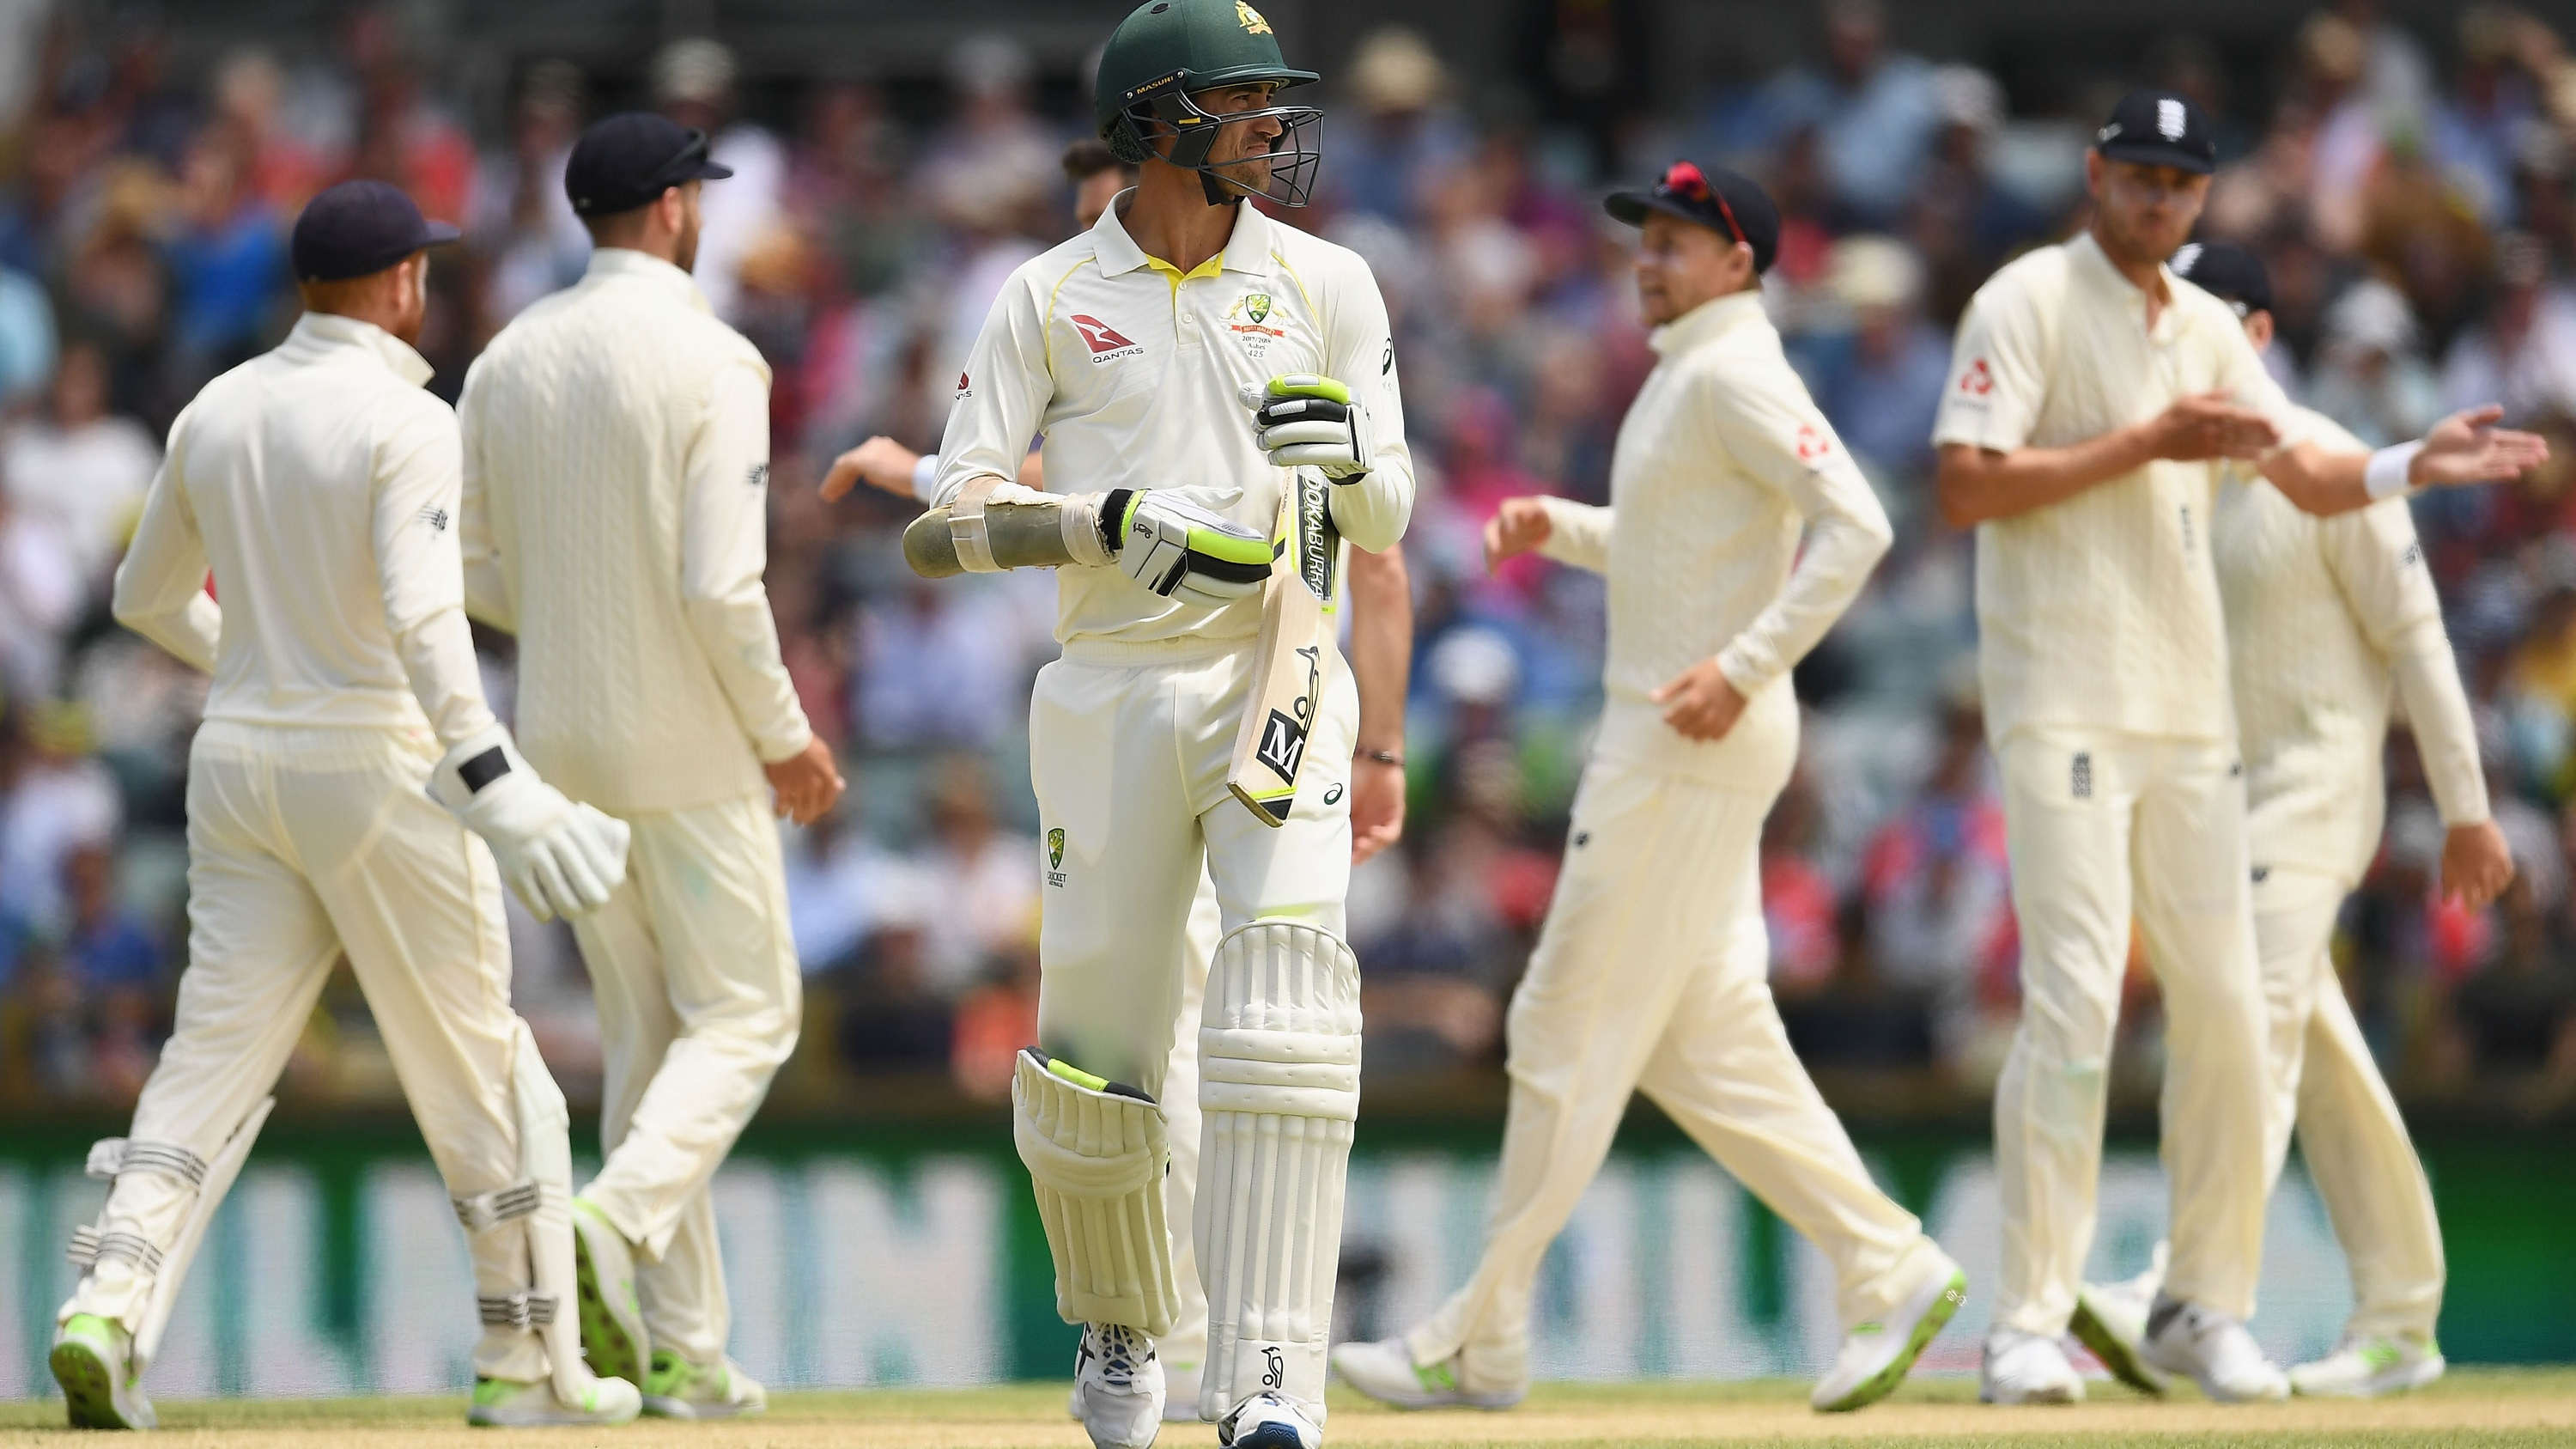 Watch starc run out in farcical circumstances cricket for Farcical run out